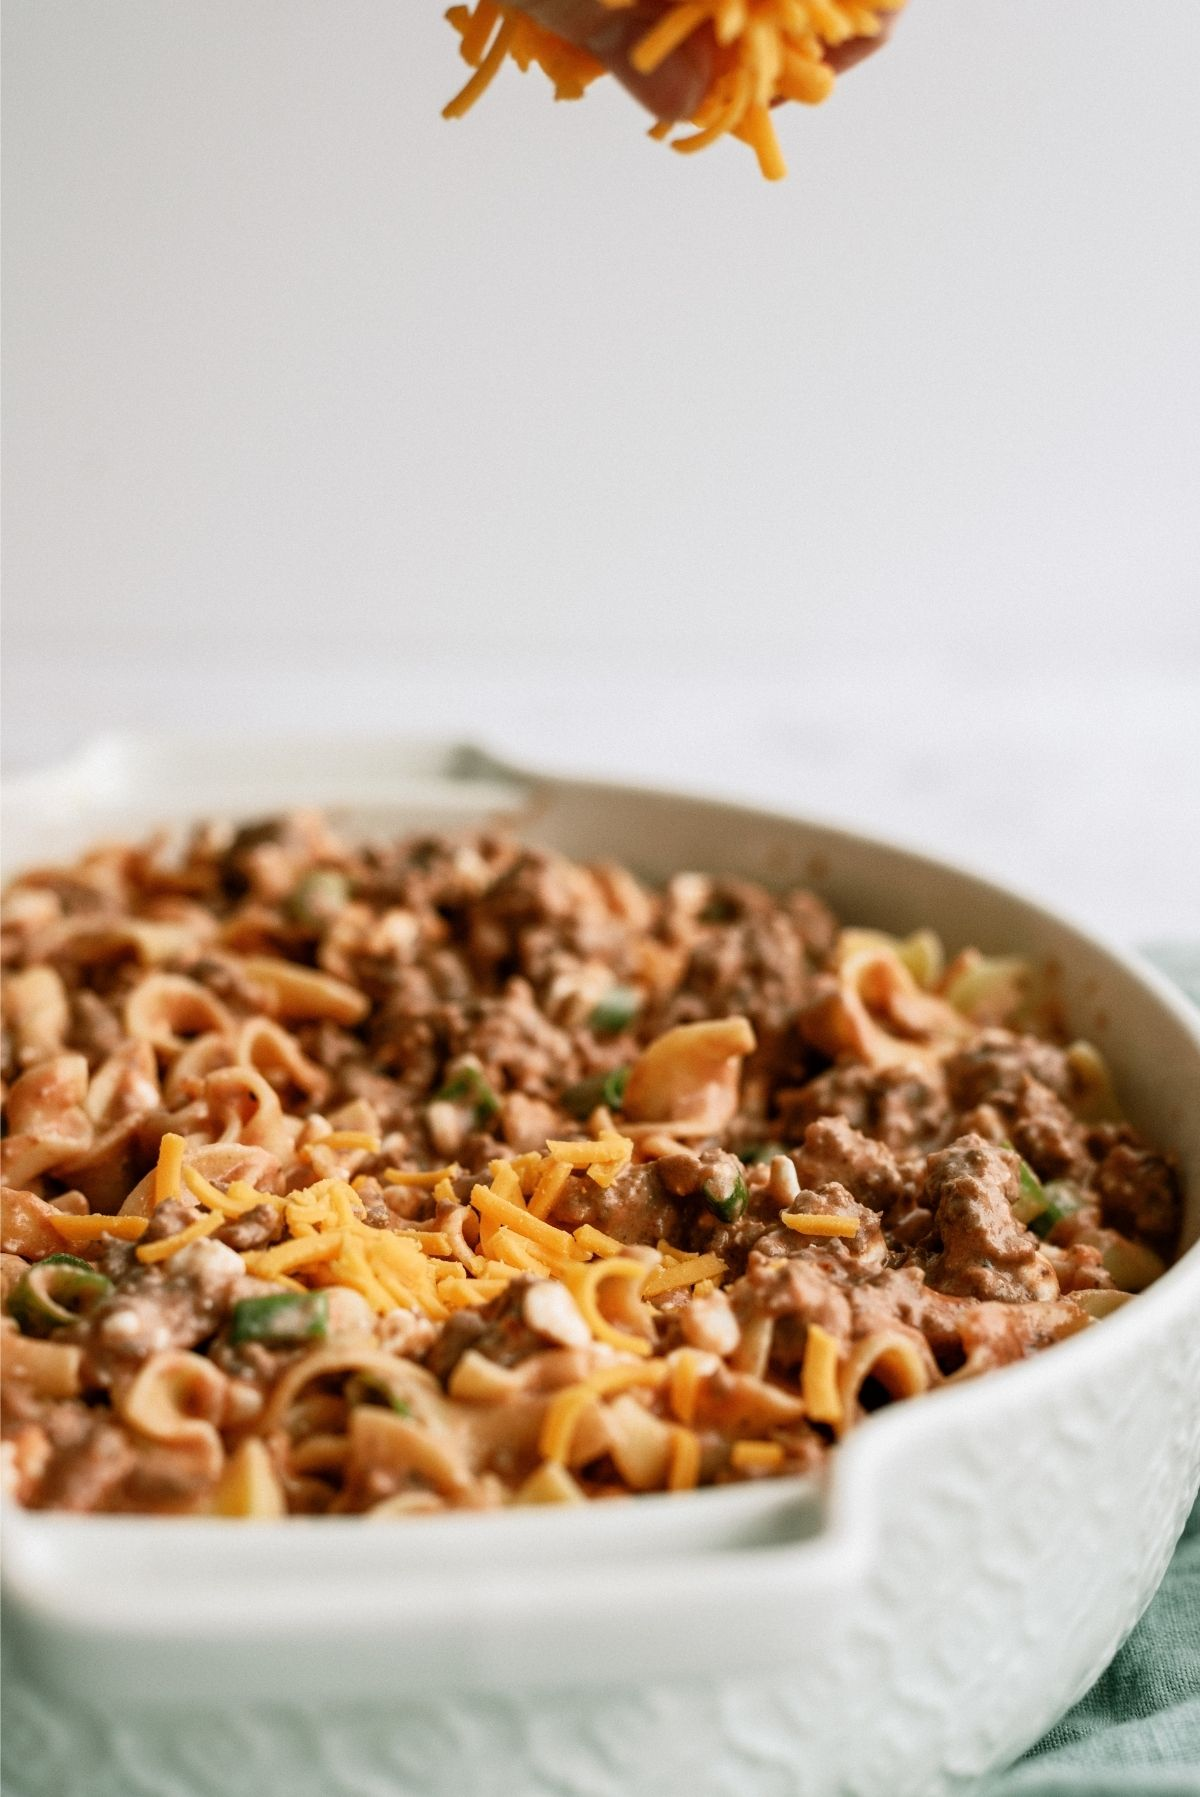 Shredded Cheese on Beef and Noodle Casserole